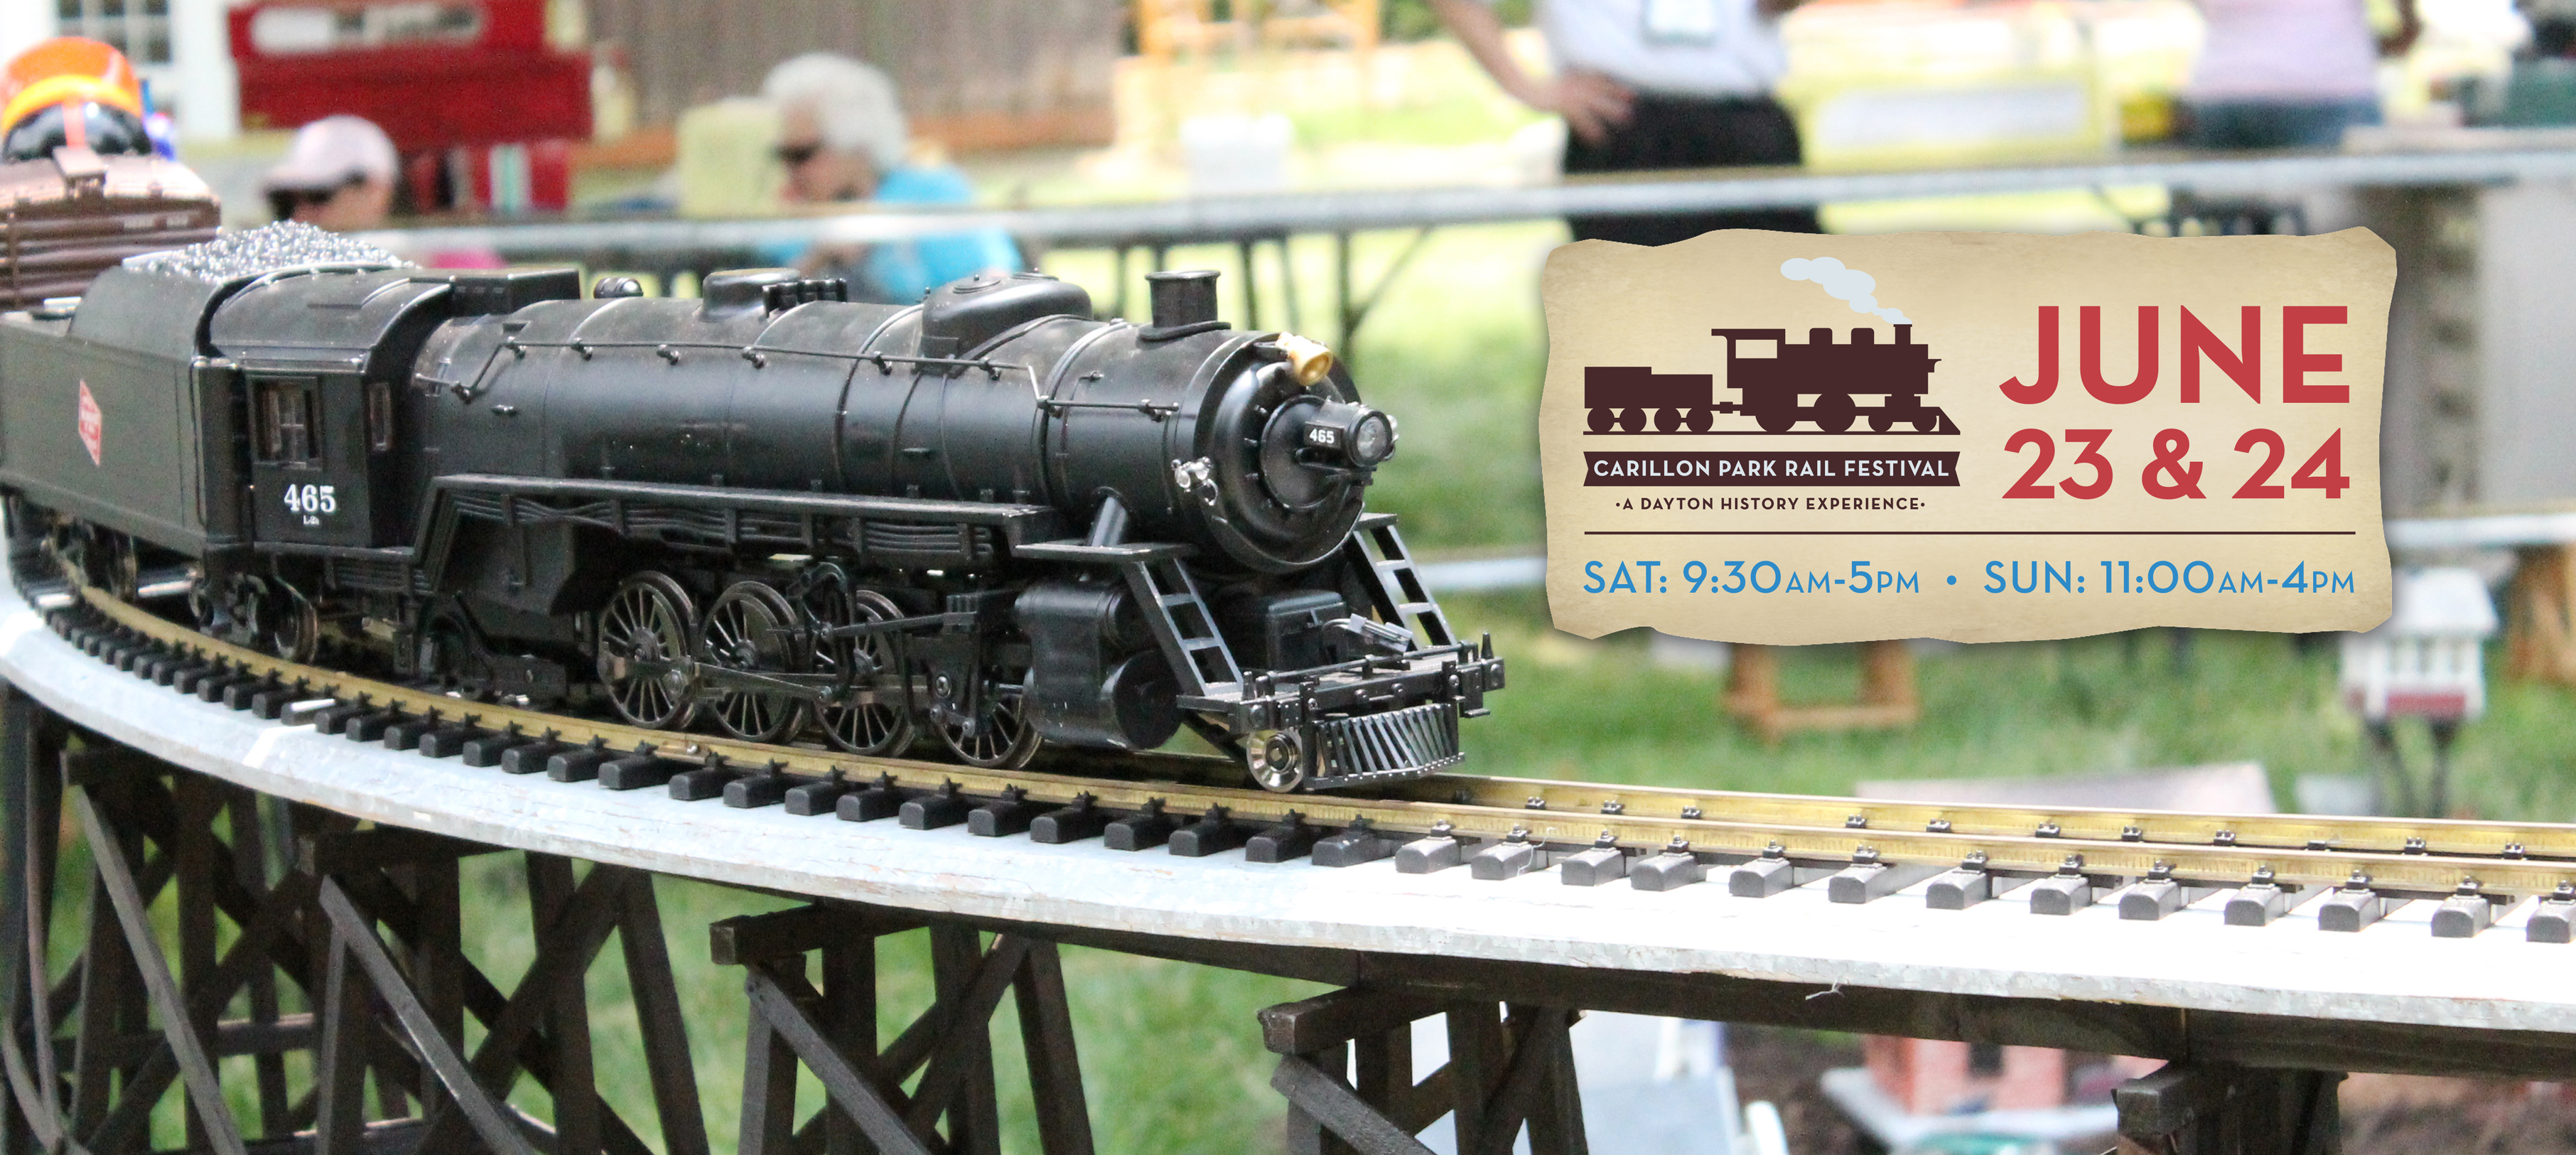 All Aboard for the 13th annual Rail Festival!